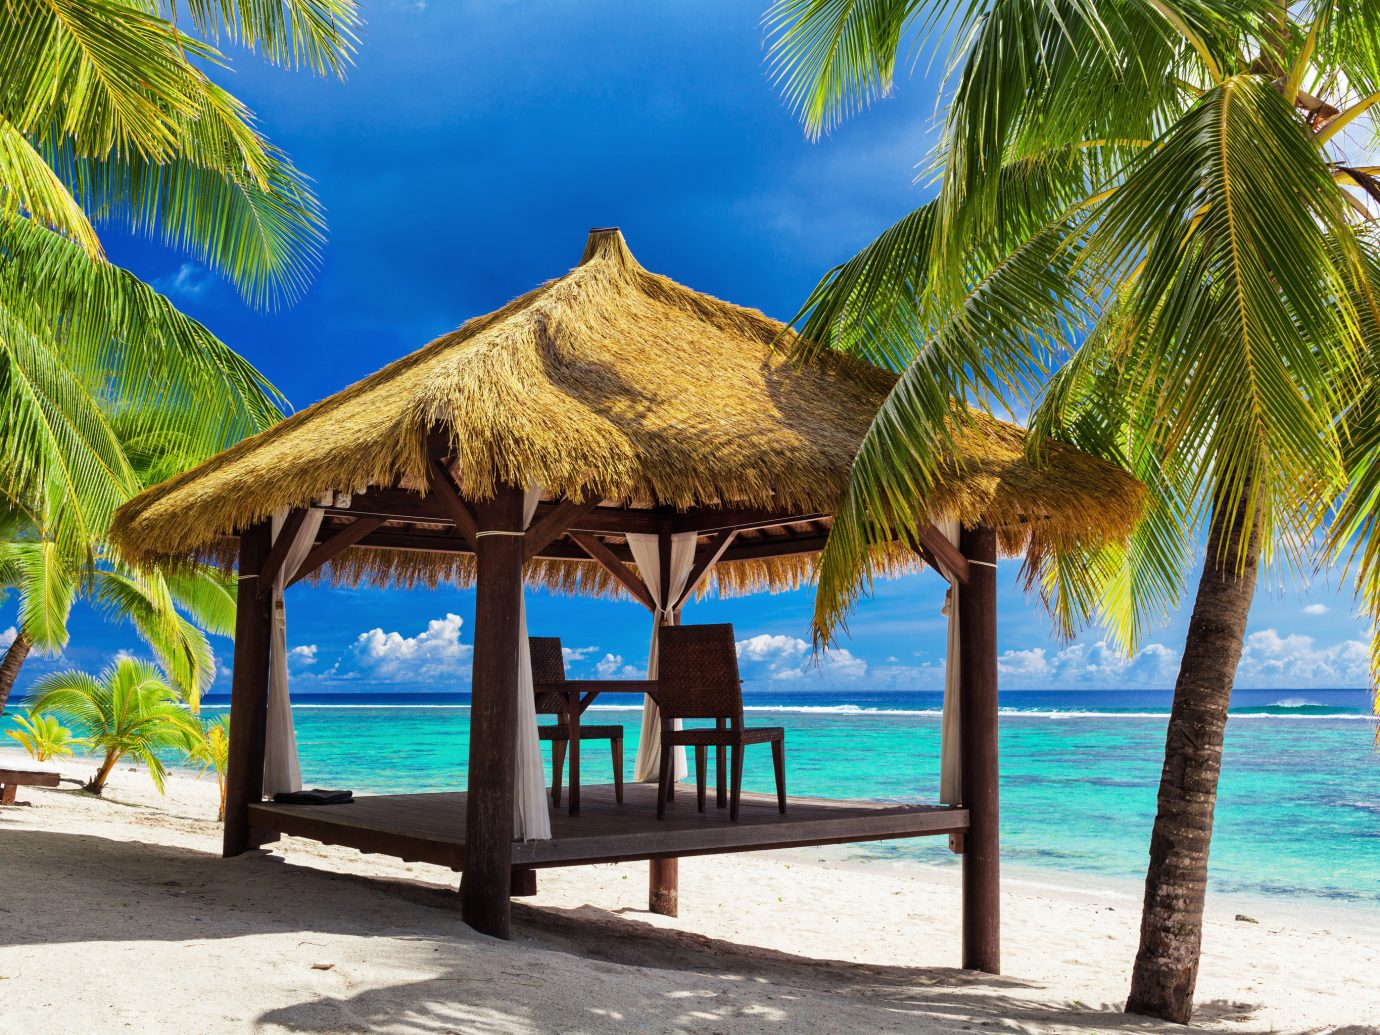 Islands Trip Ideas tree outdoor water palm Beach ground umbrella leisure chair geographical feature caribbean Pool Resort vacation tropics Ocean arecales tourism lined shade shore Sea estate Lagoon palm family Island empty plant sandy swimming